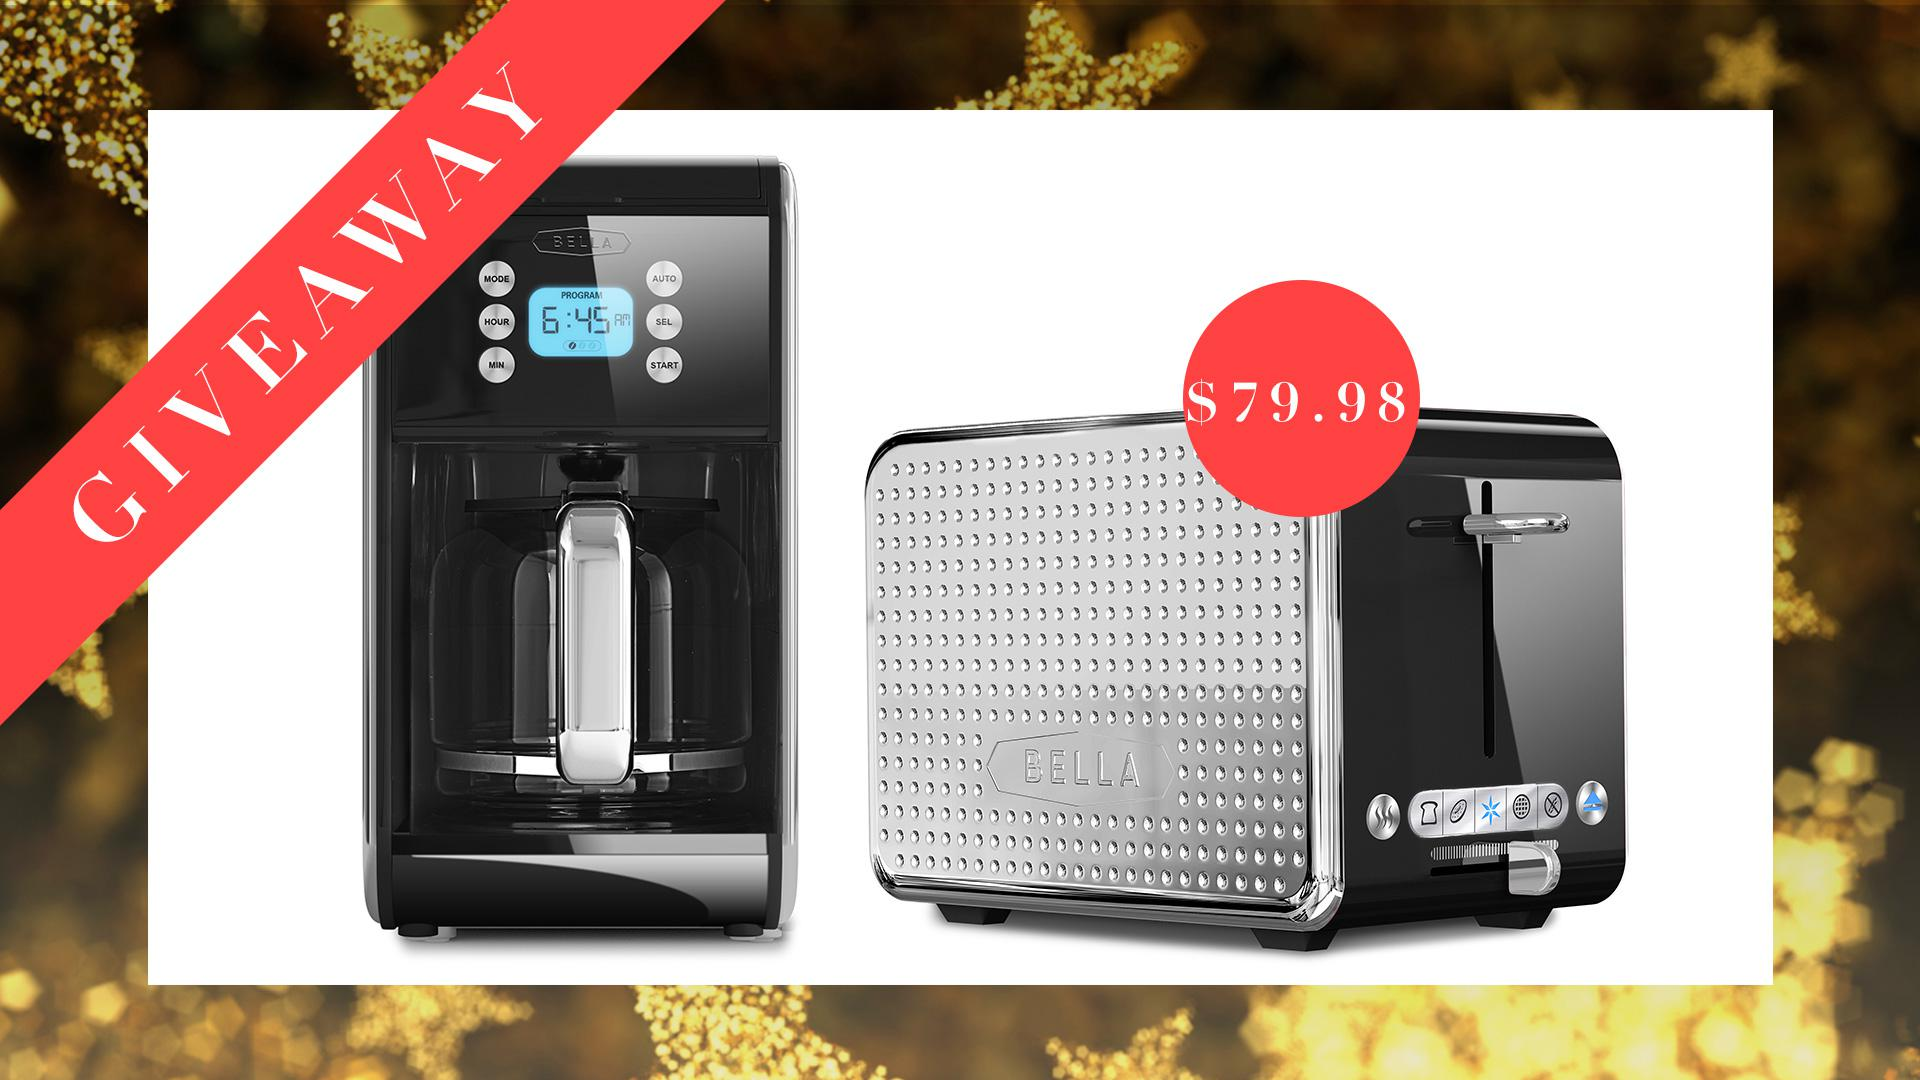 Today's Giveaway Enter to Win a Sleek Coffee Maker and Toaster fromBella